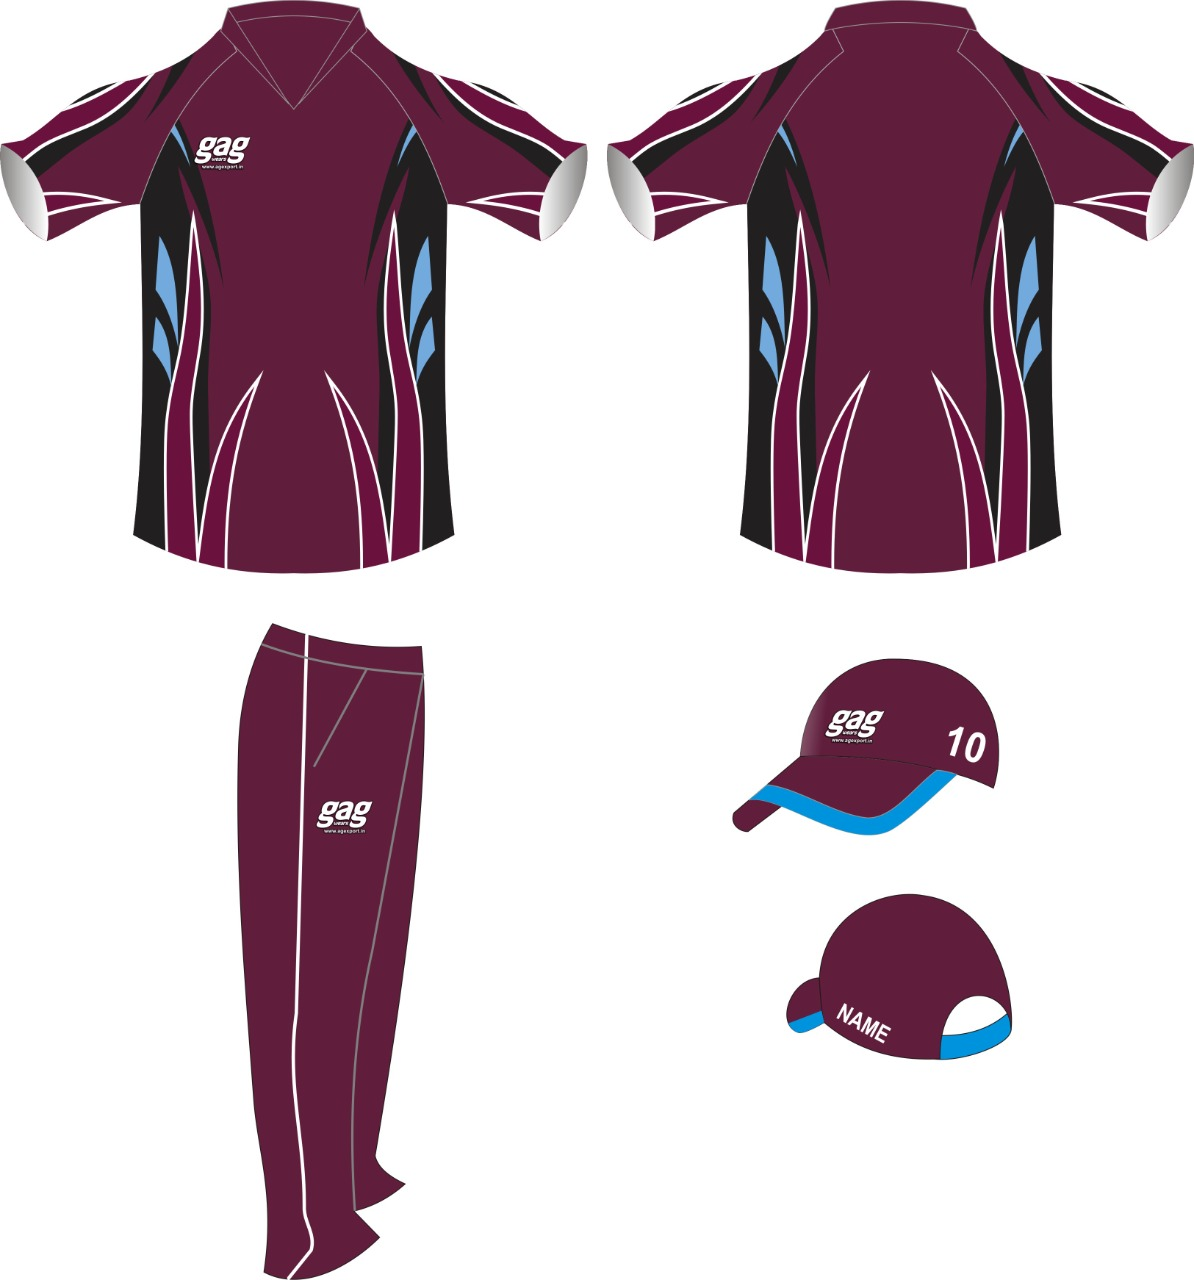 Womens Cricket Uniform Manufacturers in Jalandhar in Bahrain